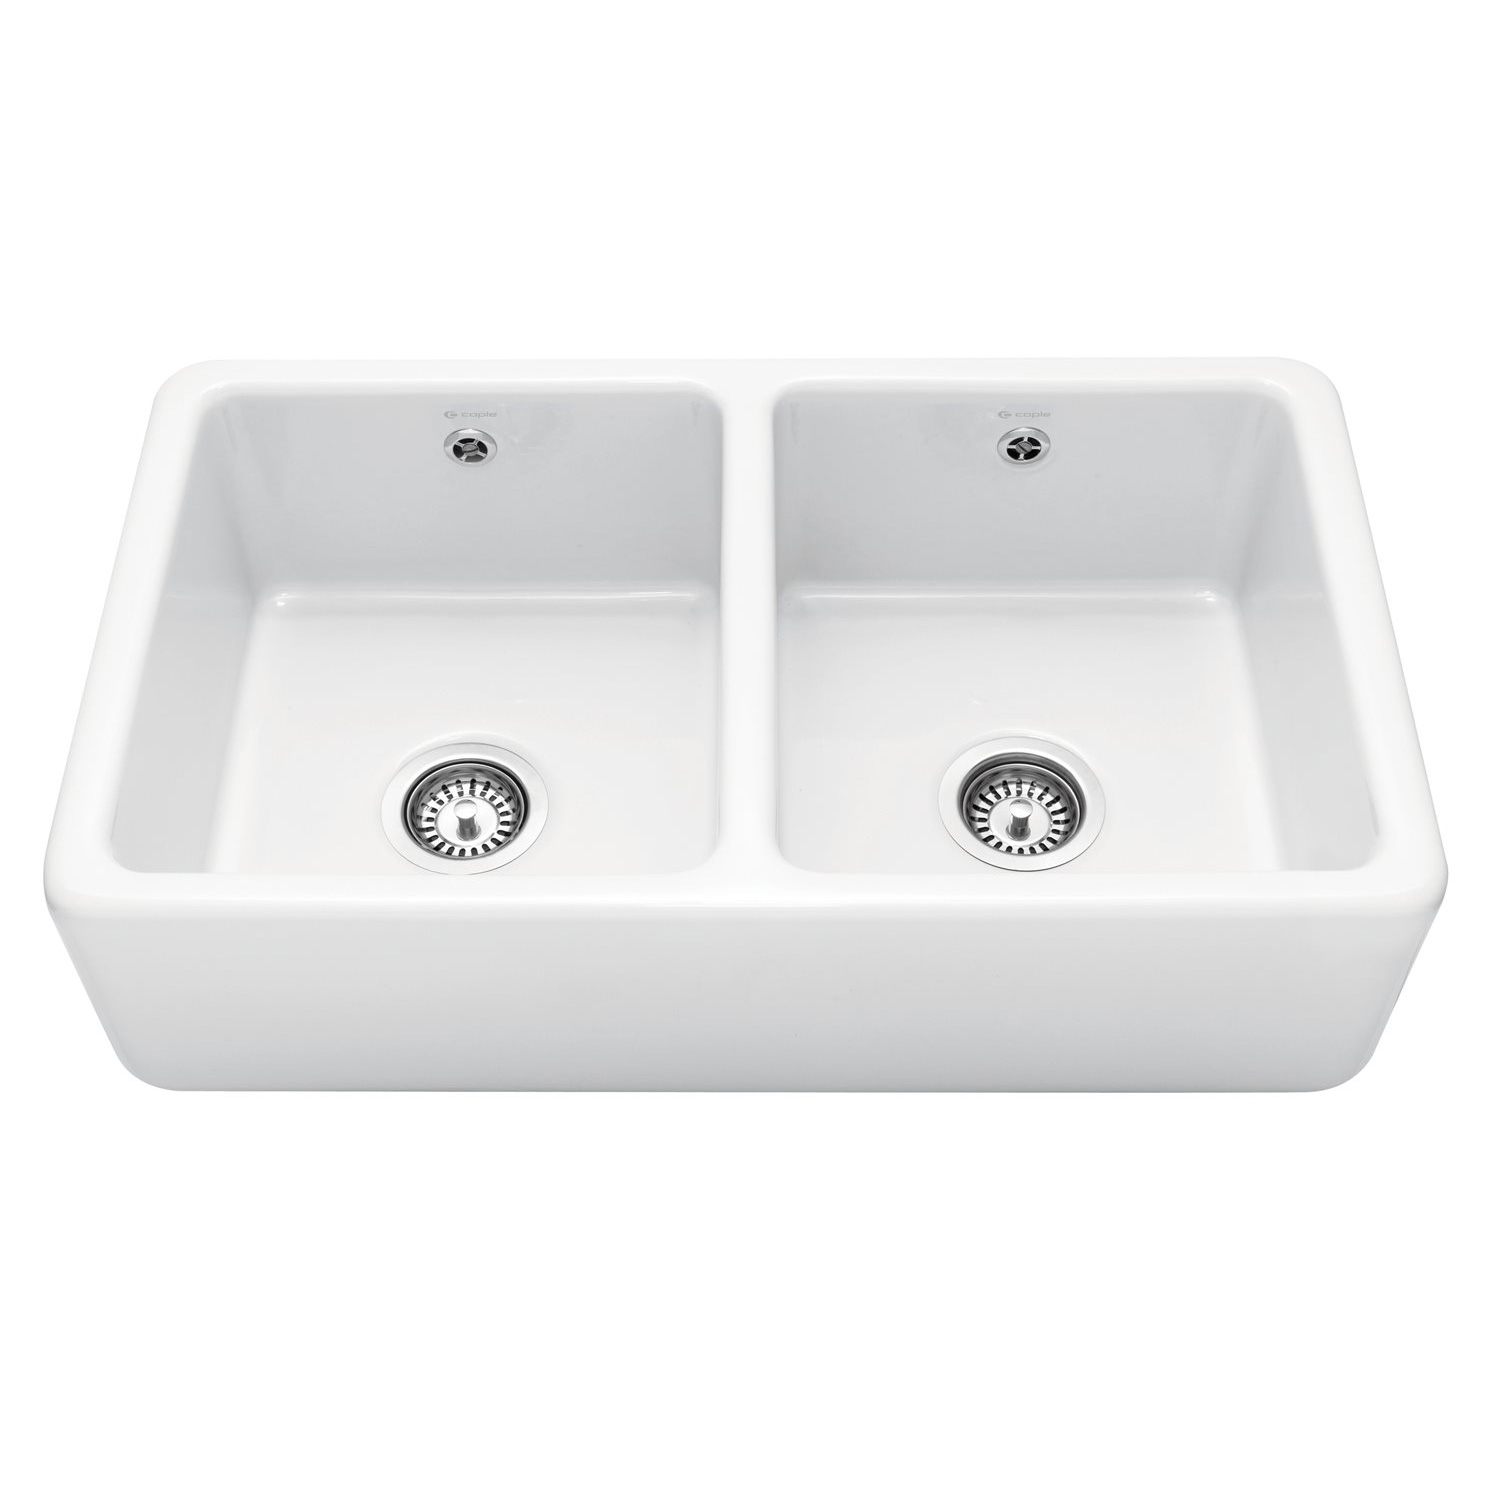 Caple Kempton 2 0 Bowl Belfast Kitchen Sink Sinks Taps Com